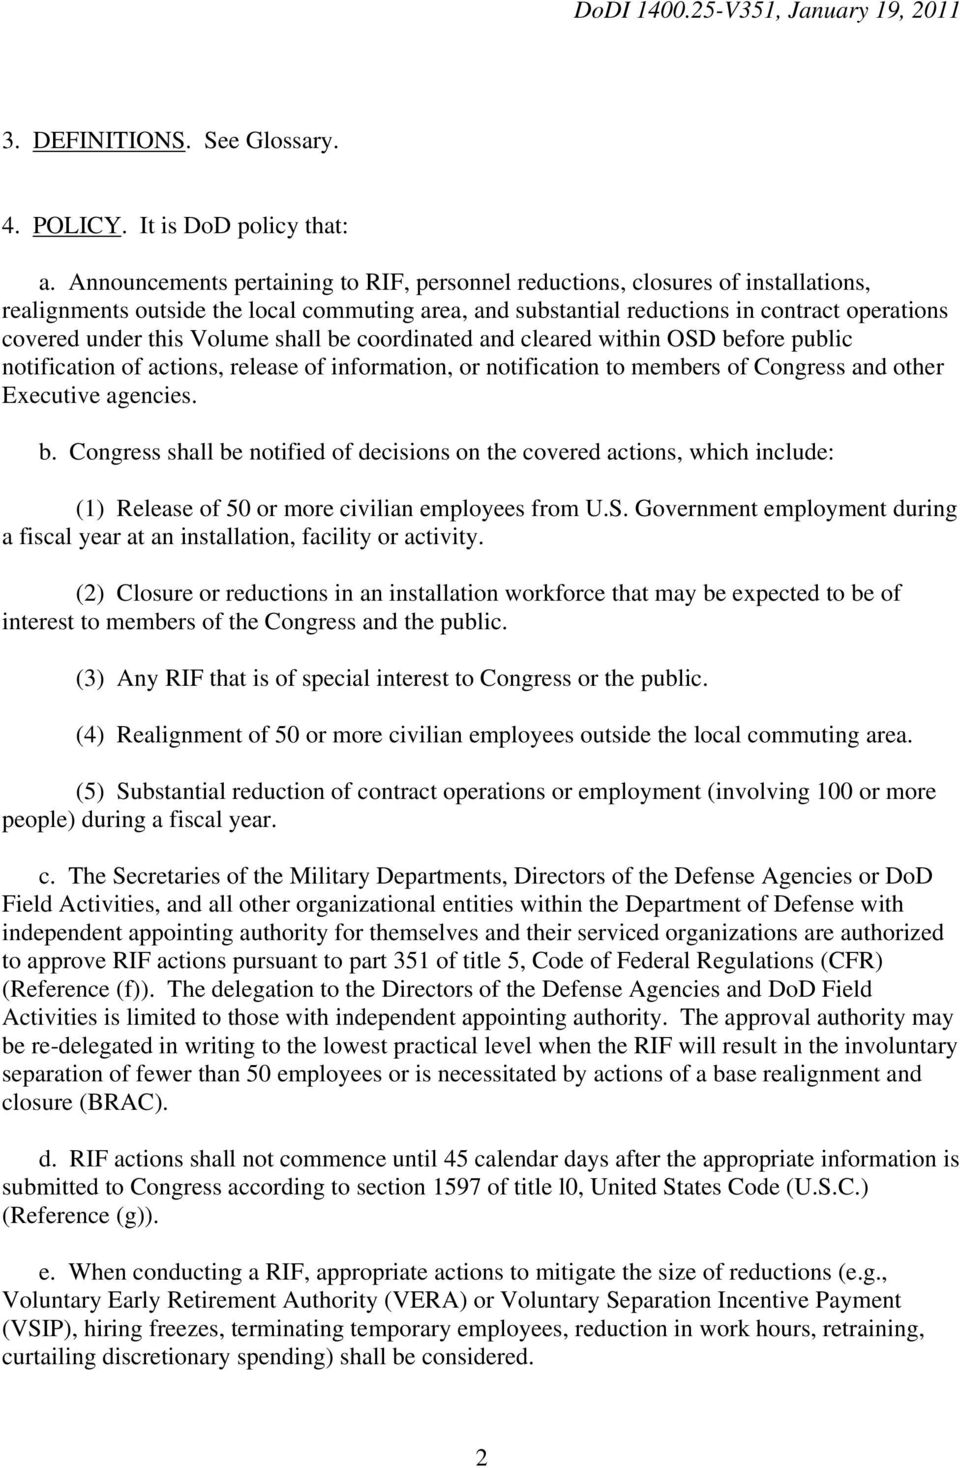 Volume shall be coordinated and cleared within OSD before public notification of actions, release of information, or notification to members of Congress and other Executive agencies. b. Congress shall be notified of decisions on the covered actions, which include: (1) Release of 50 or more civilian employees from U.